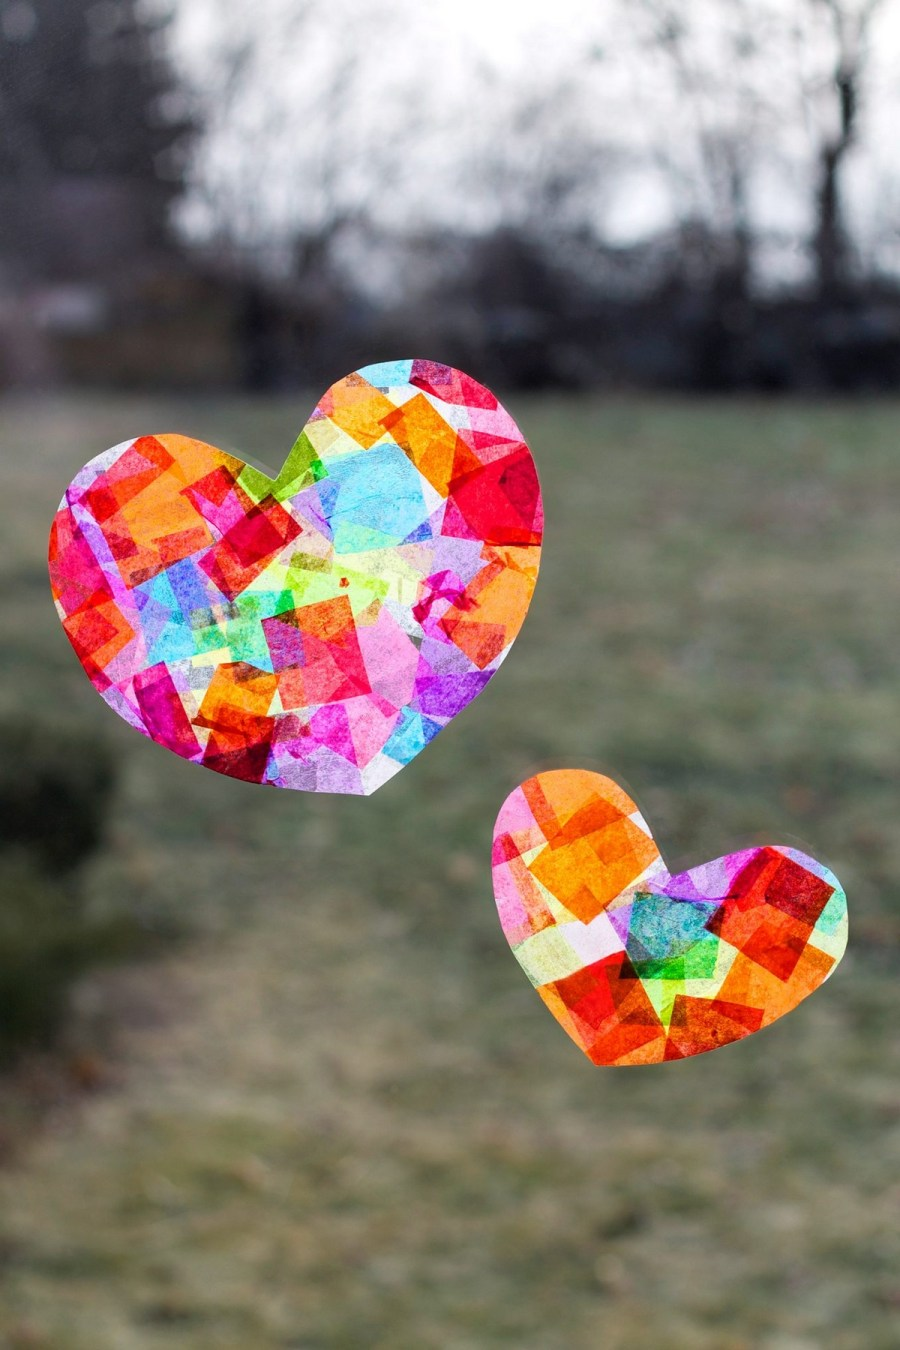 These sweet projects will have little ones wishing February 14 came around more often than just once a year.